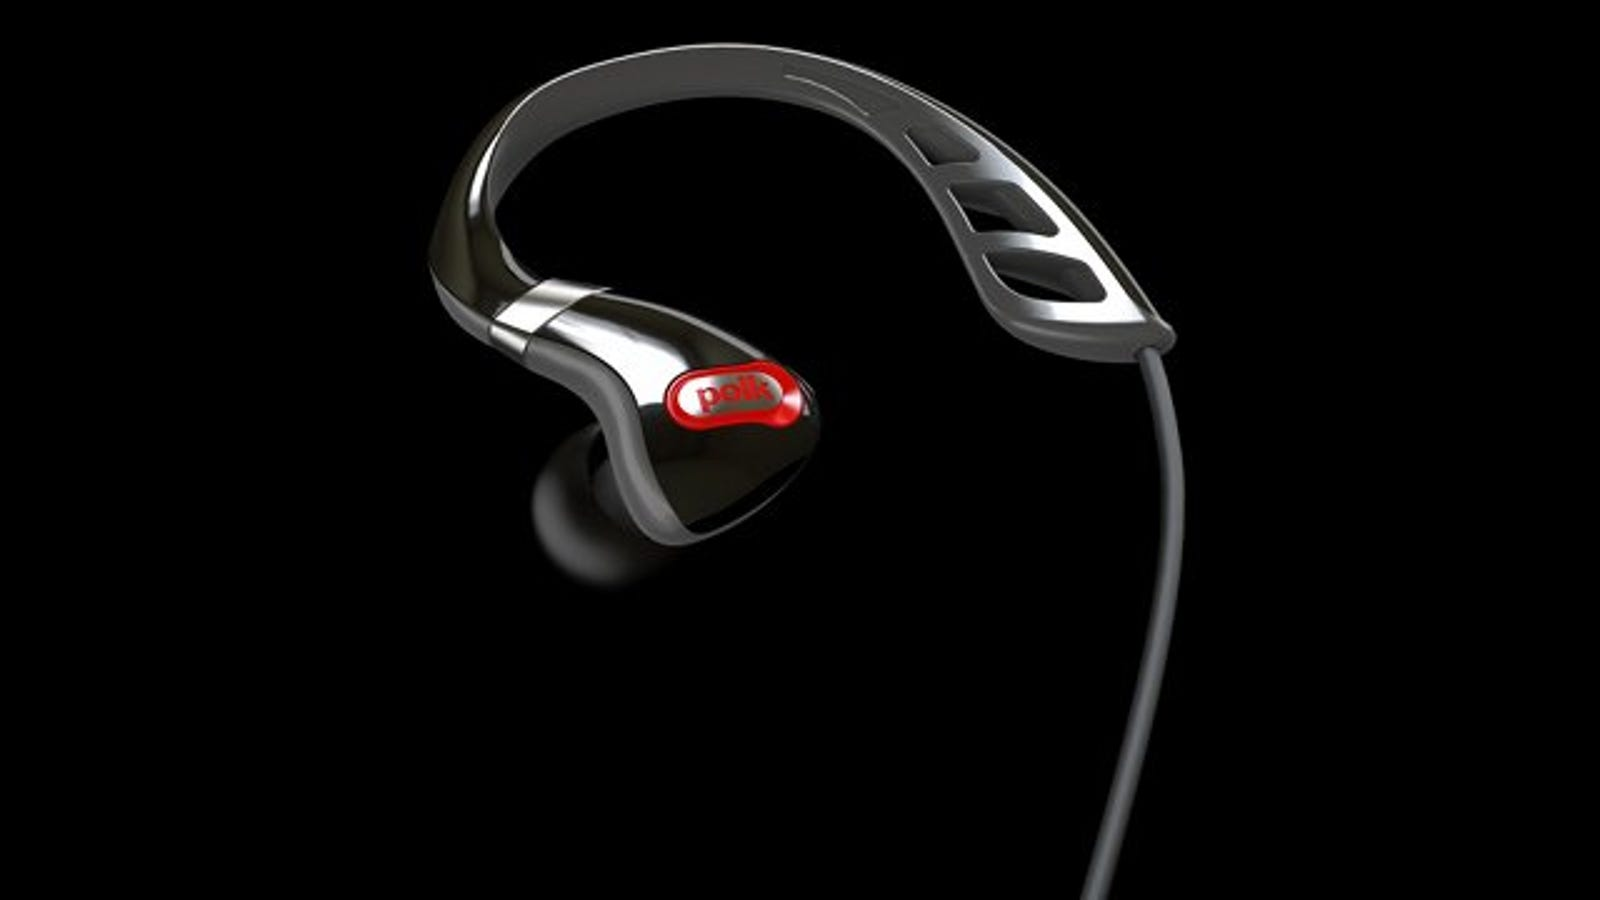 apple bluetooth earbuds wireless - Daily Desired: Exercise Headphones Designed to Stay Put